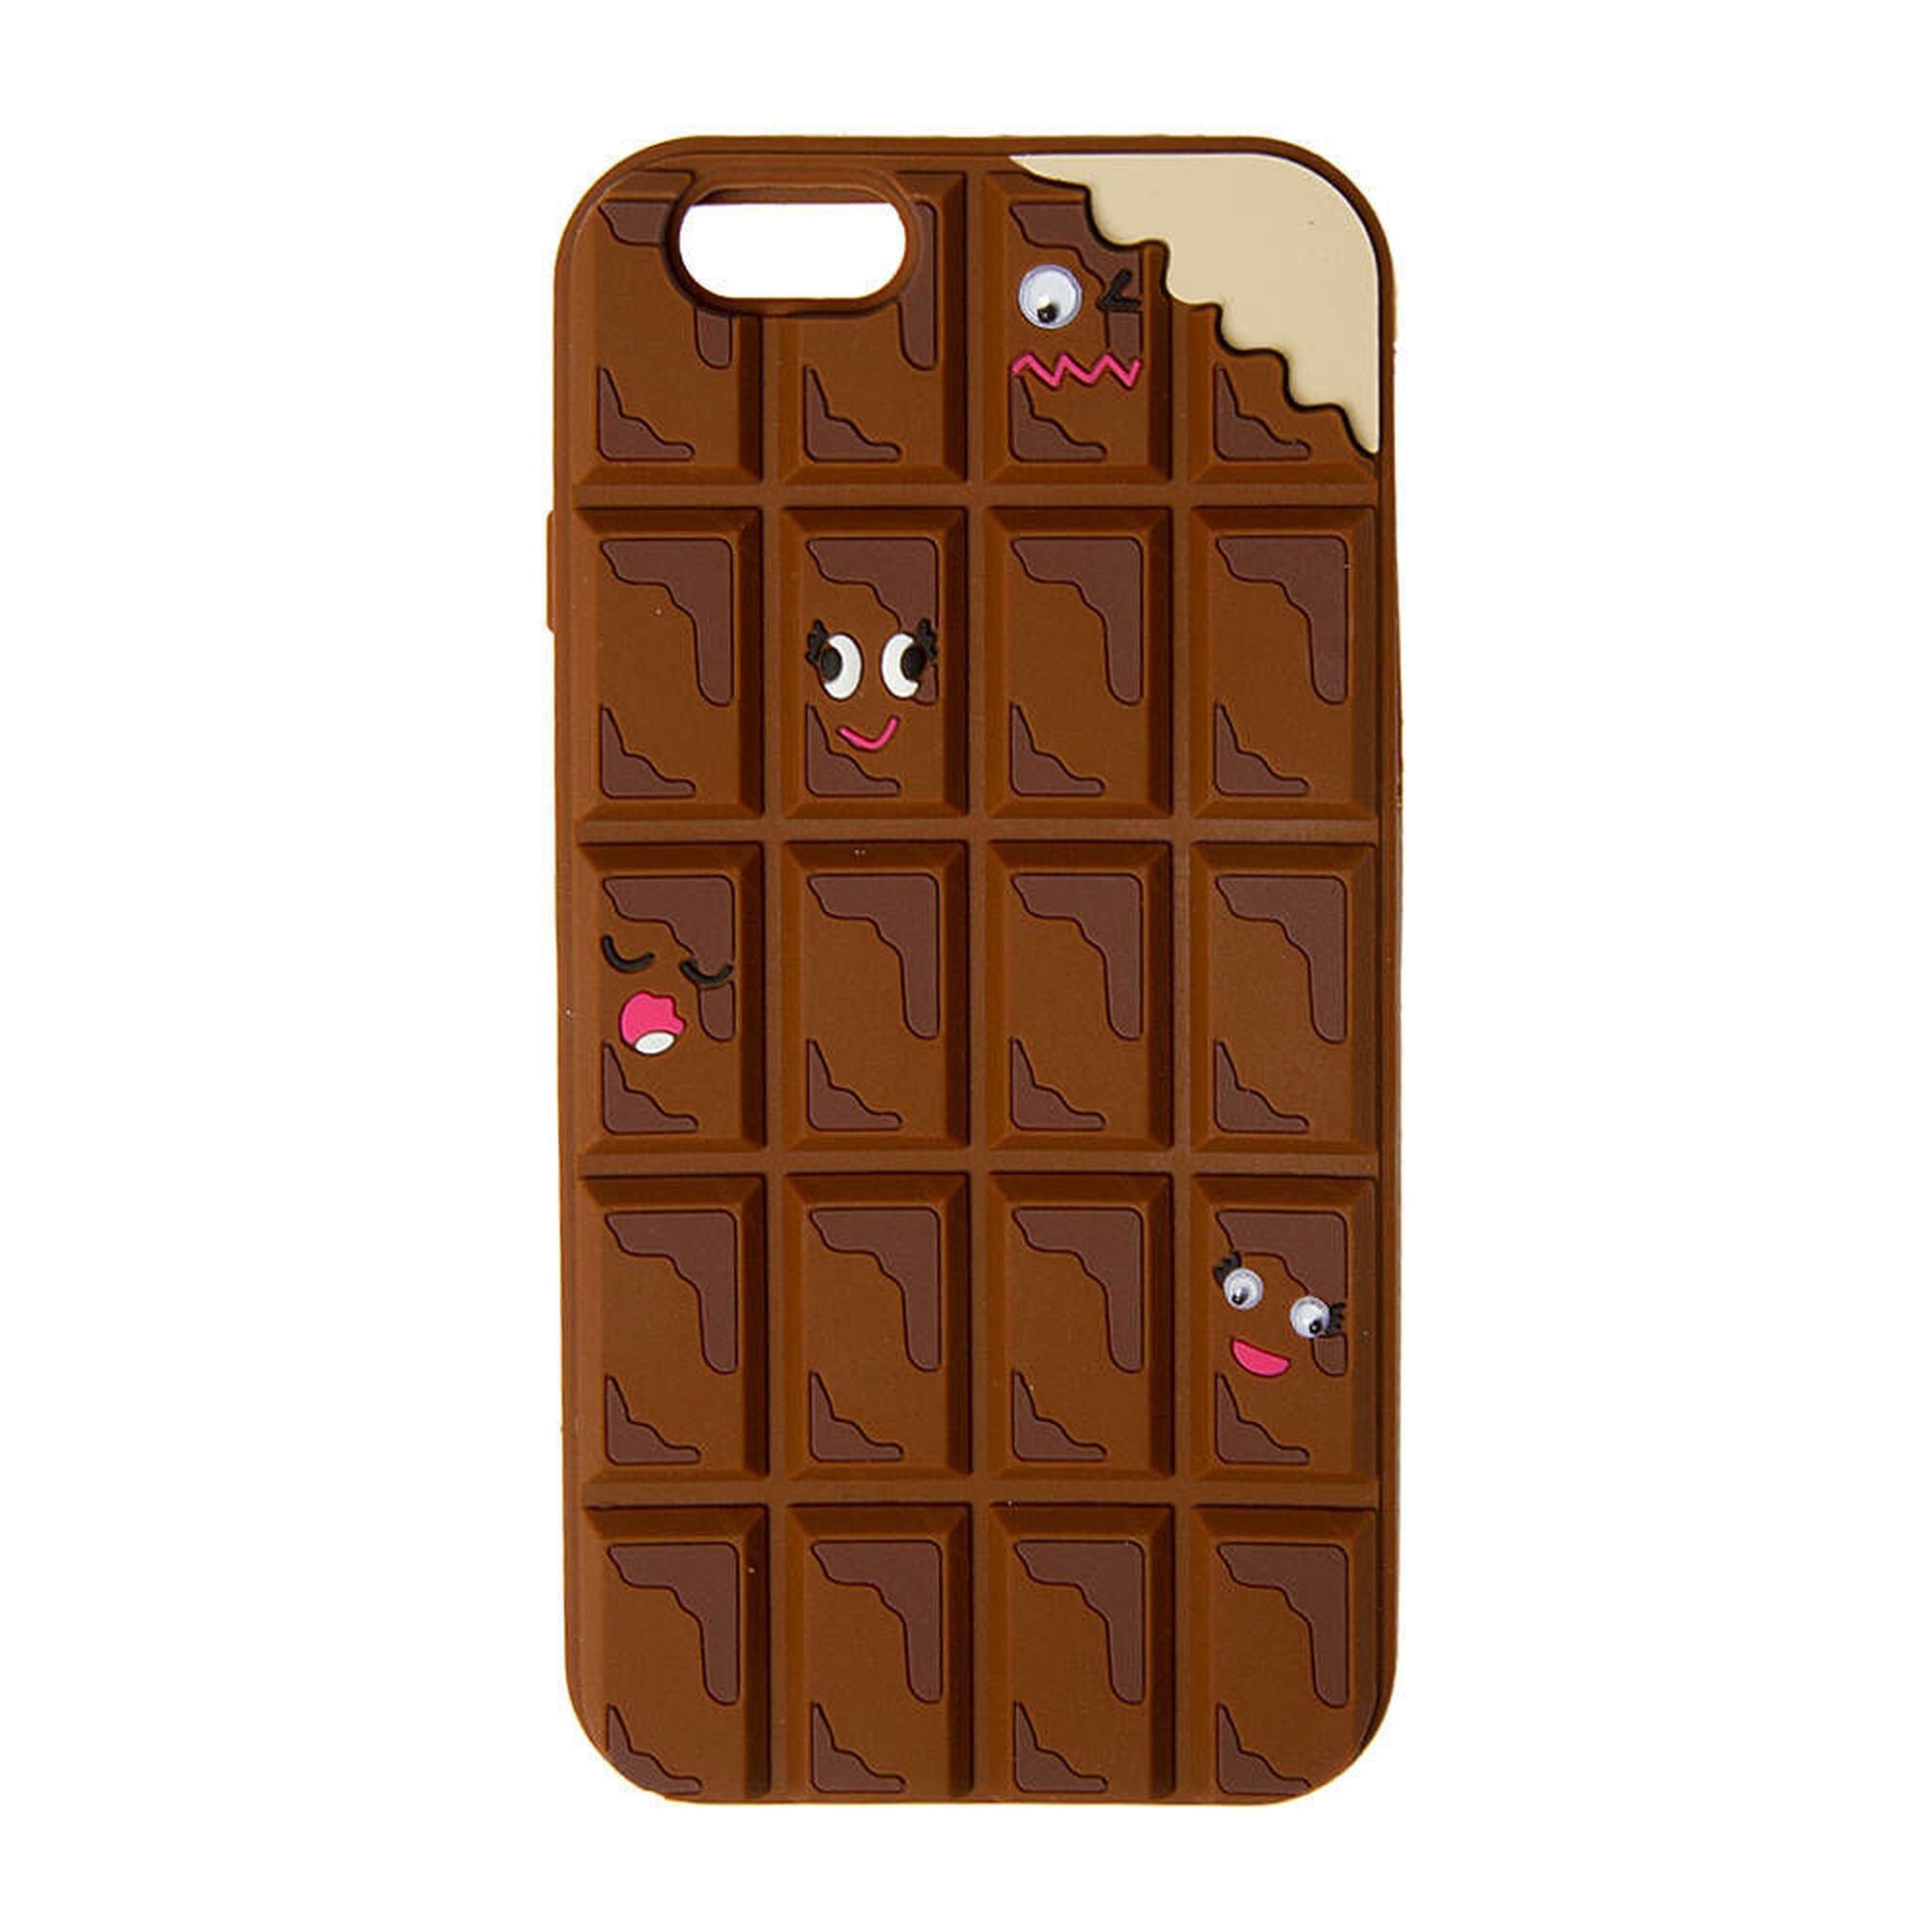 3D Silicone Chocolate Bar Phone Case | Claire's US